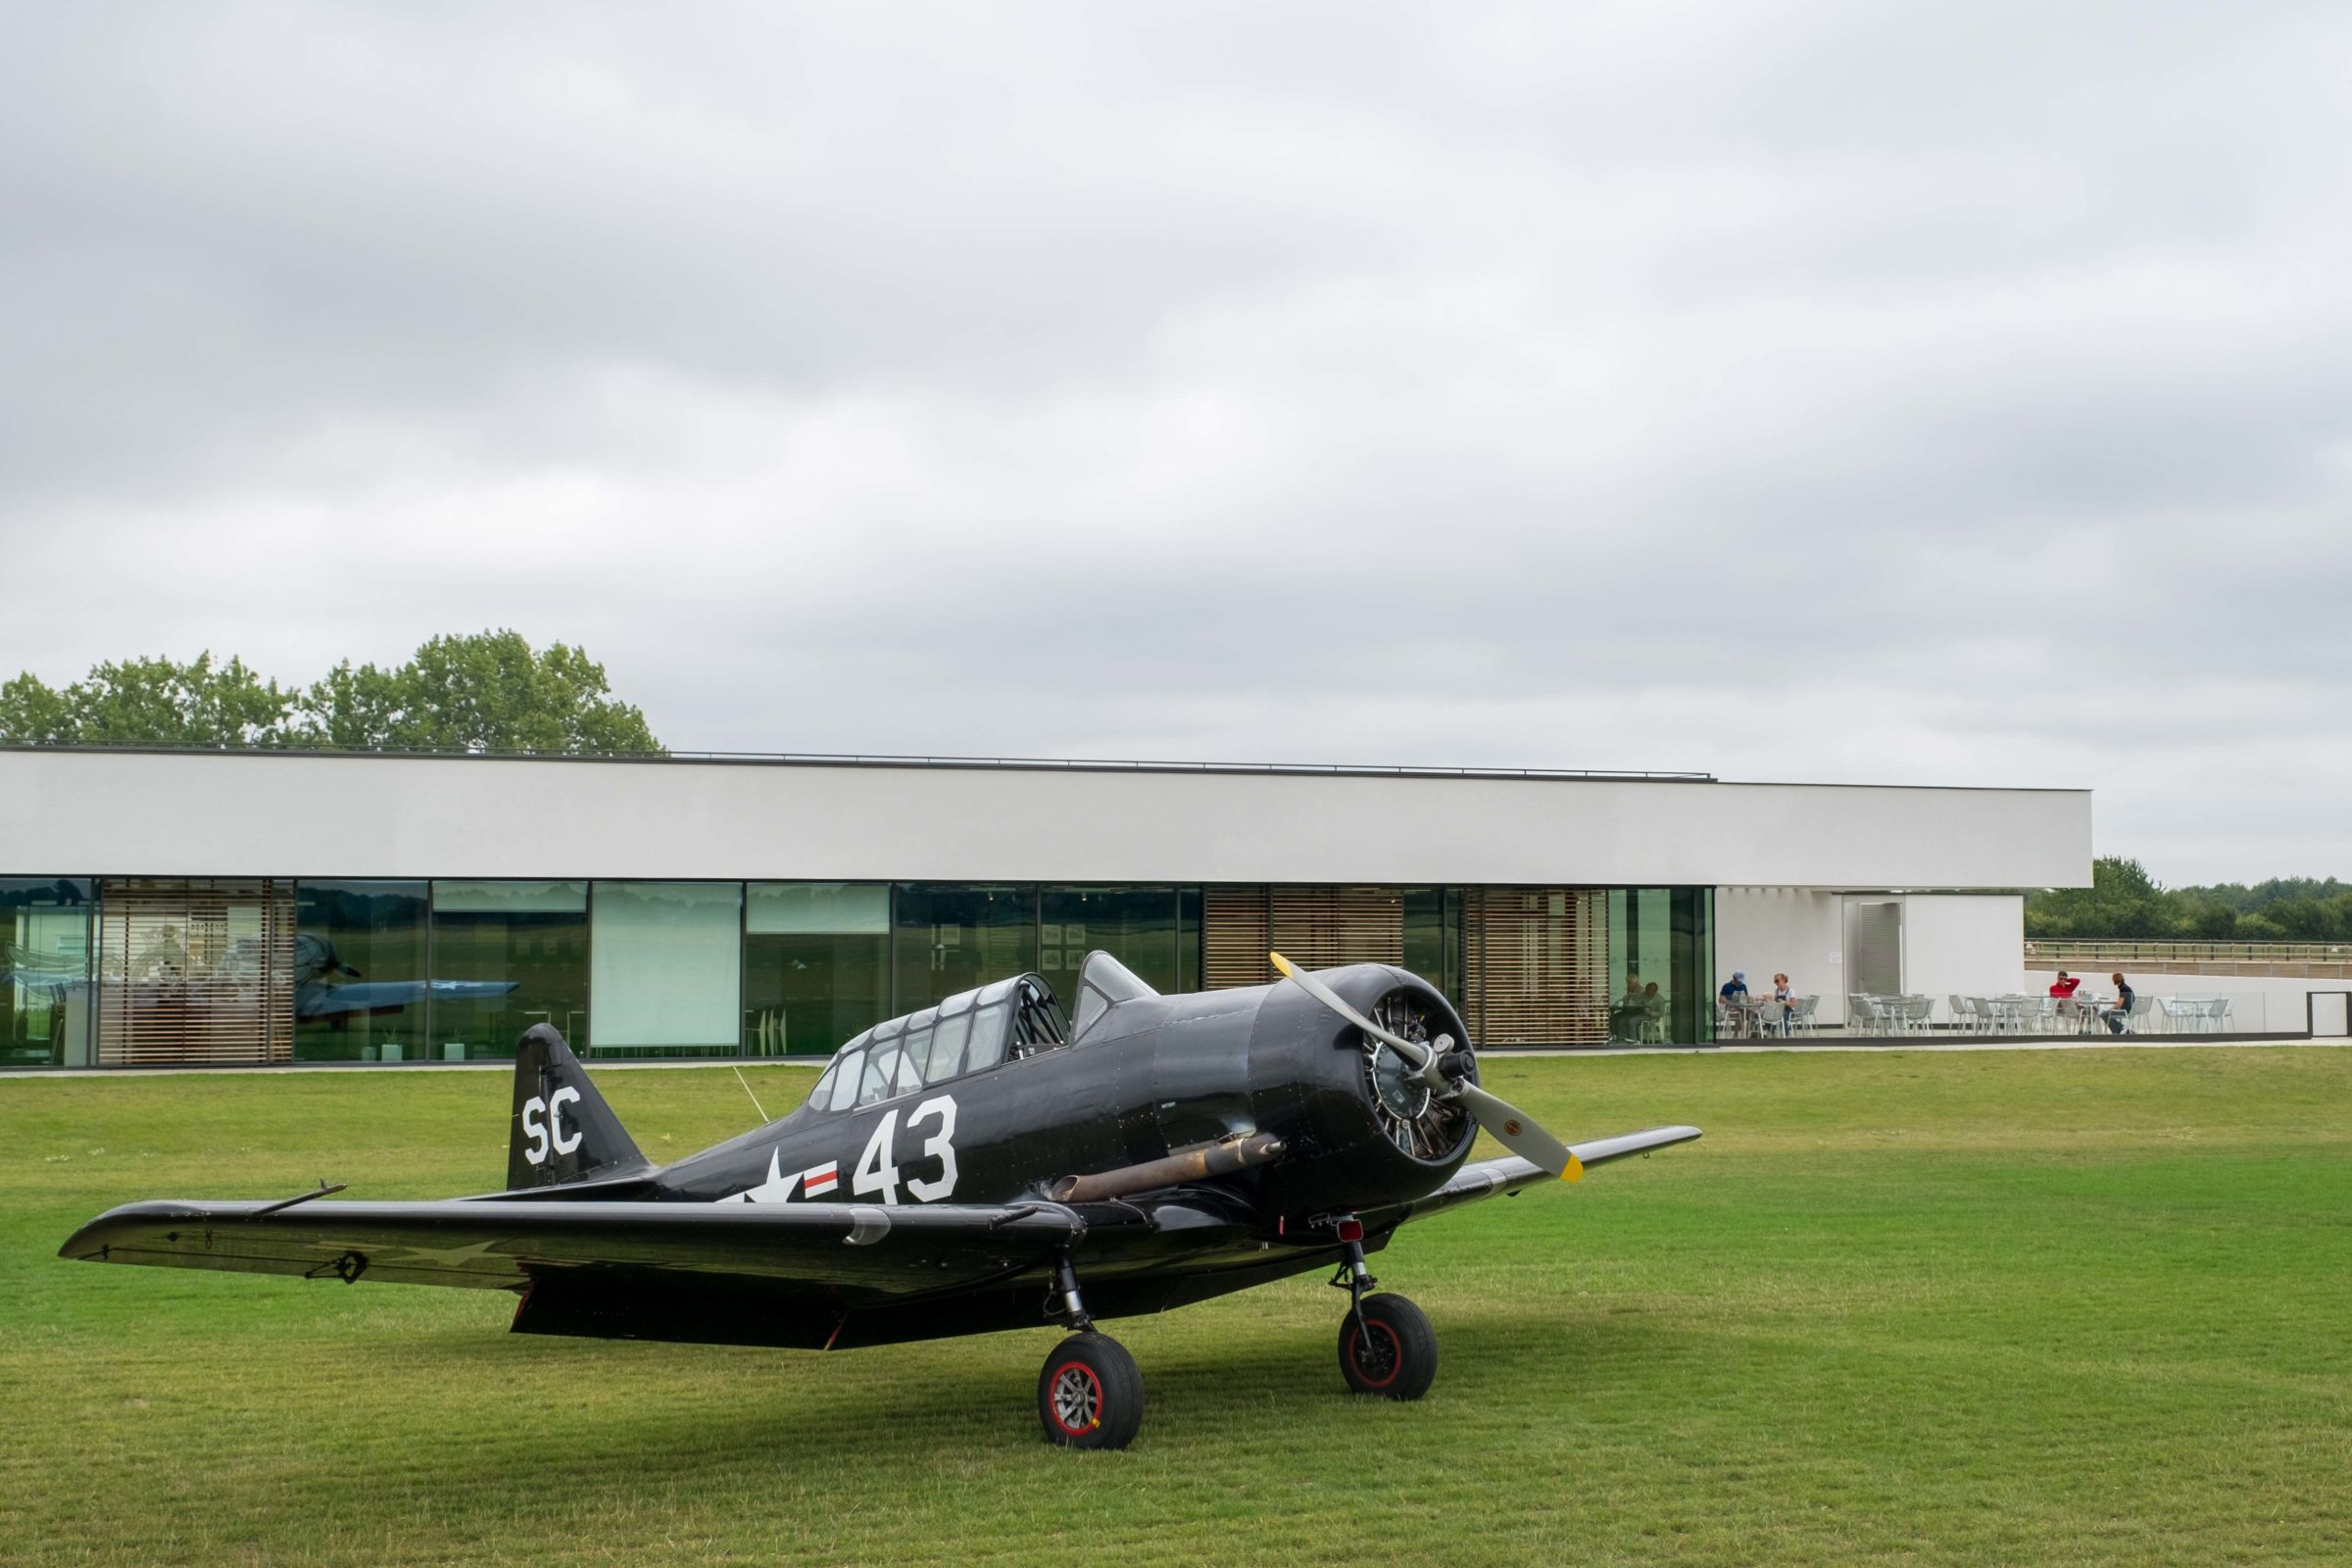 Goodwood Aerodrome